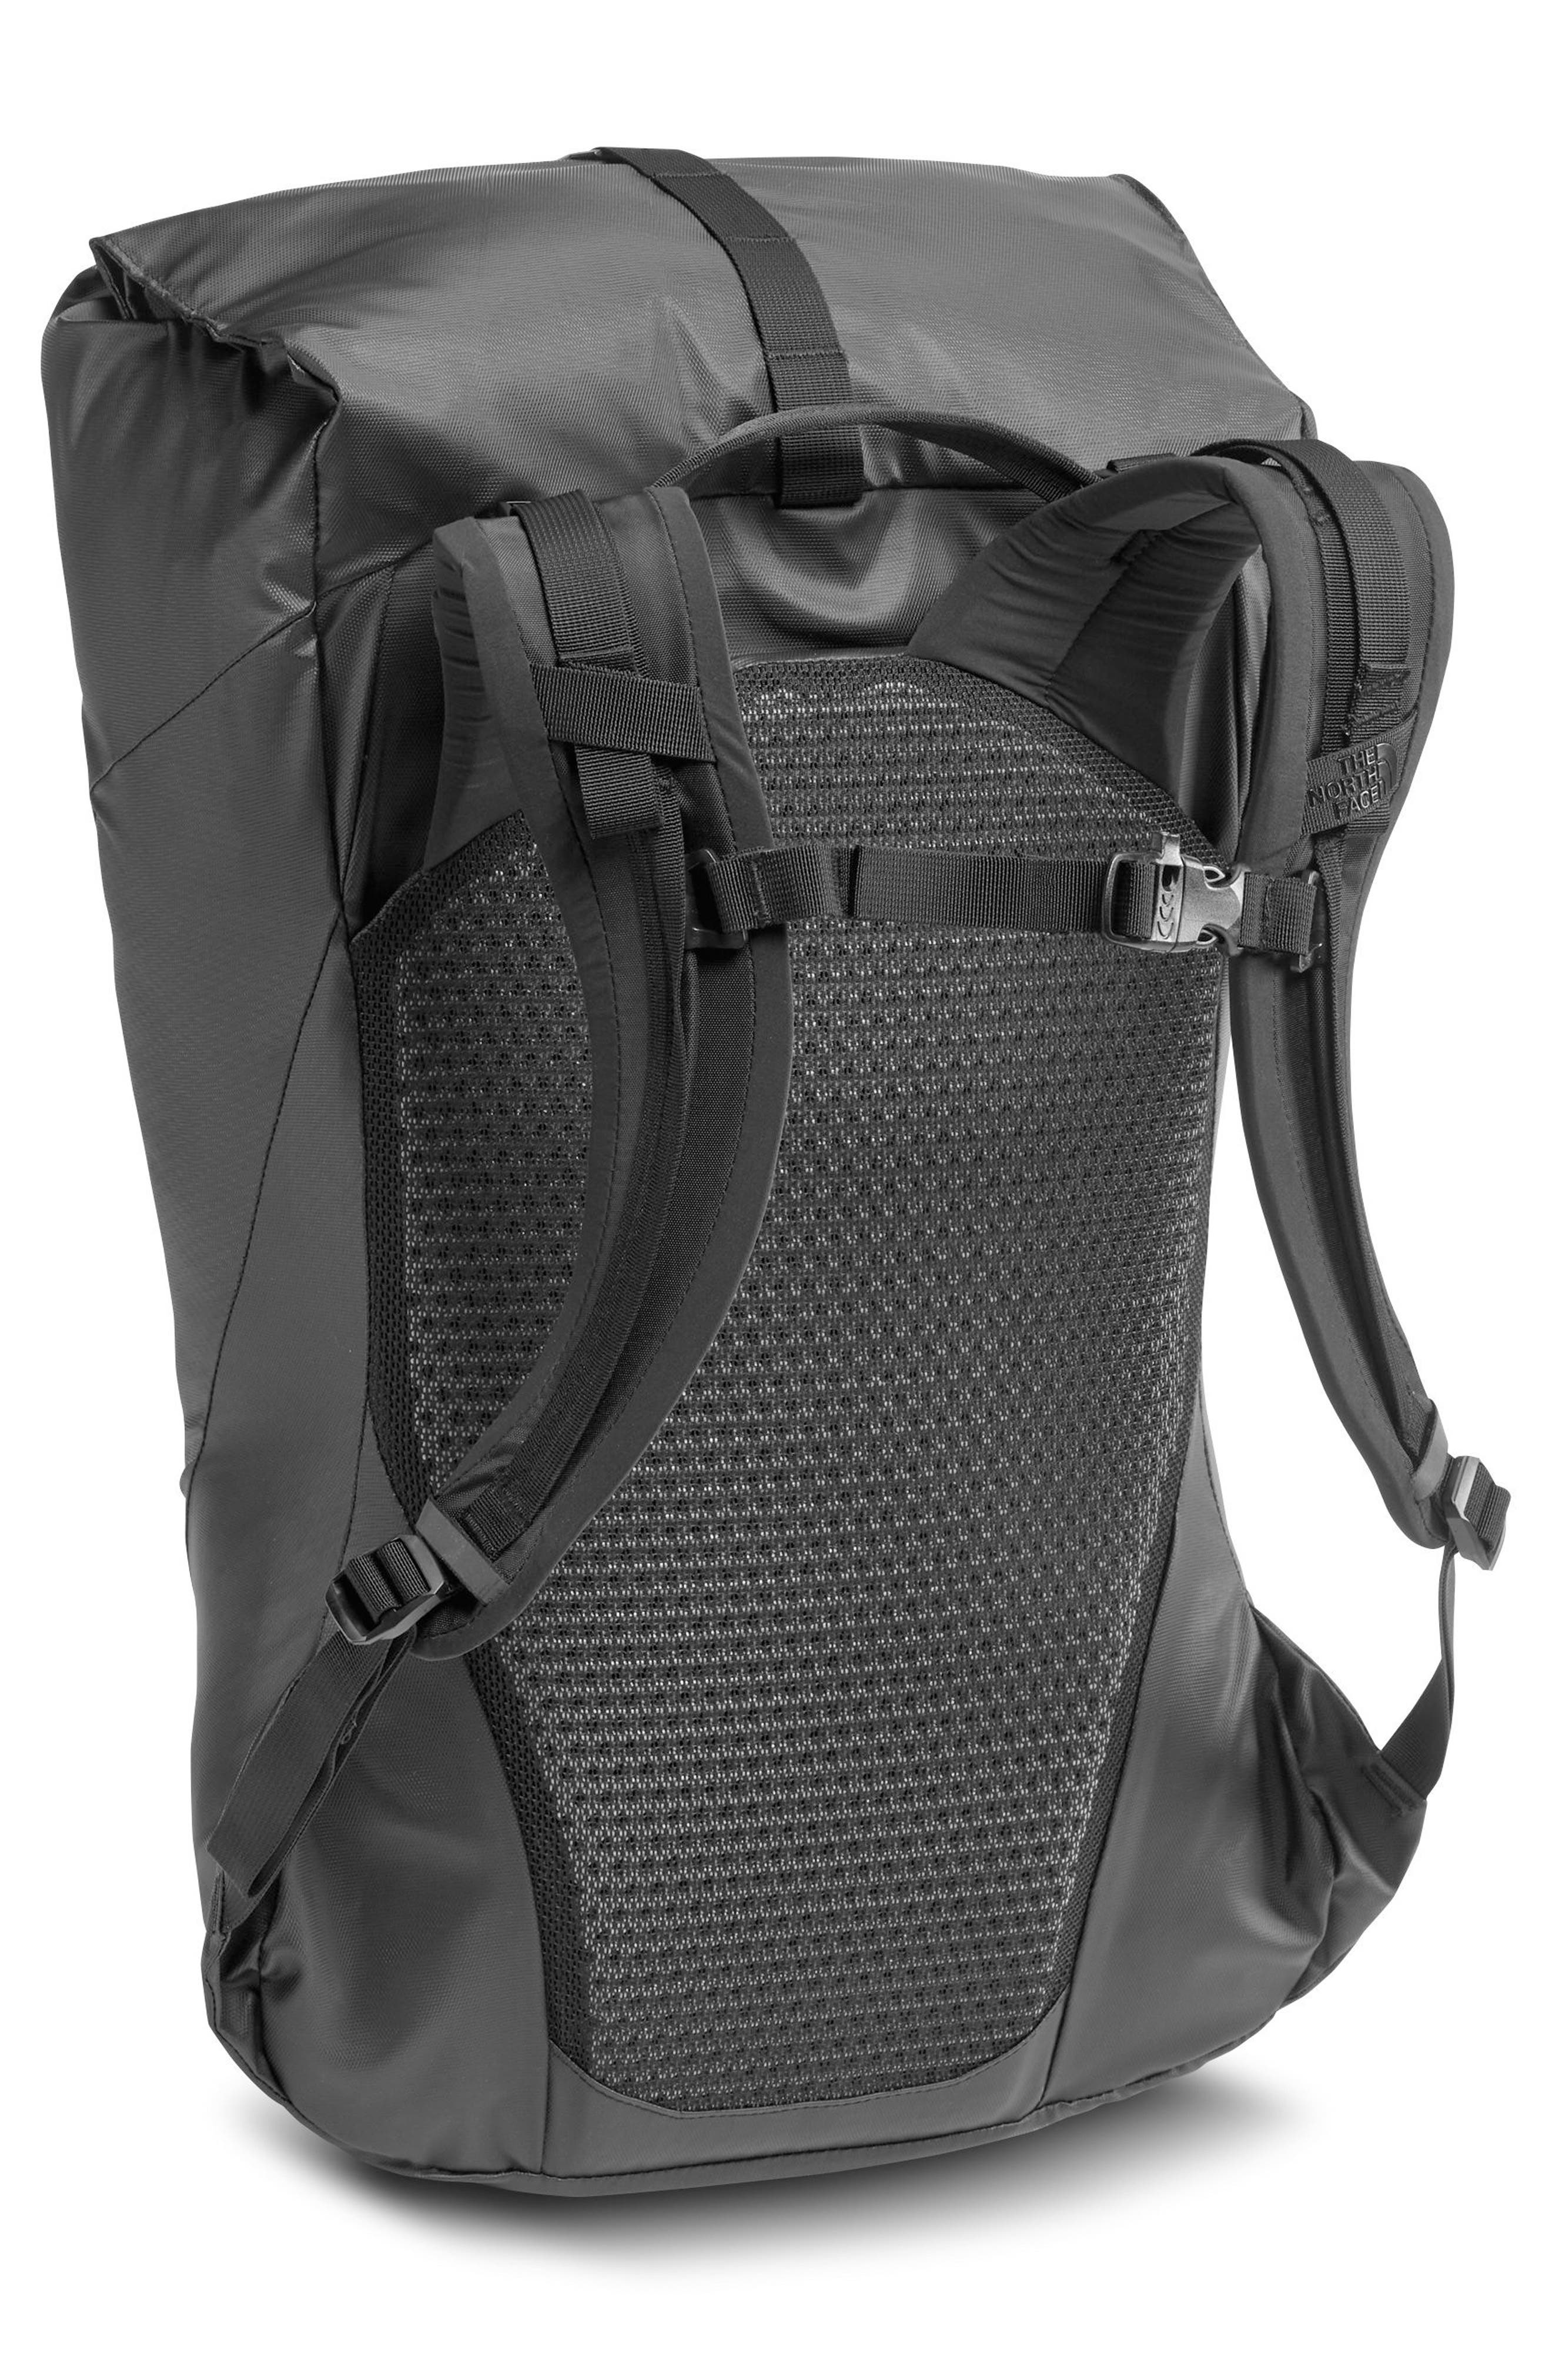 Rovara Backpack,                             Alternate thumbnail 2, color,                             Tnf Black